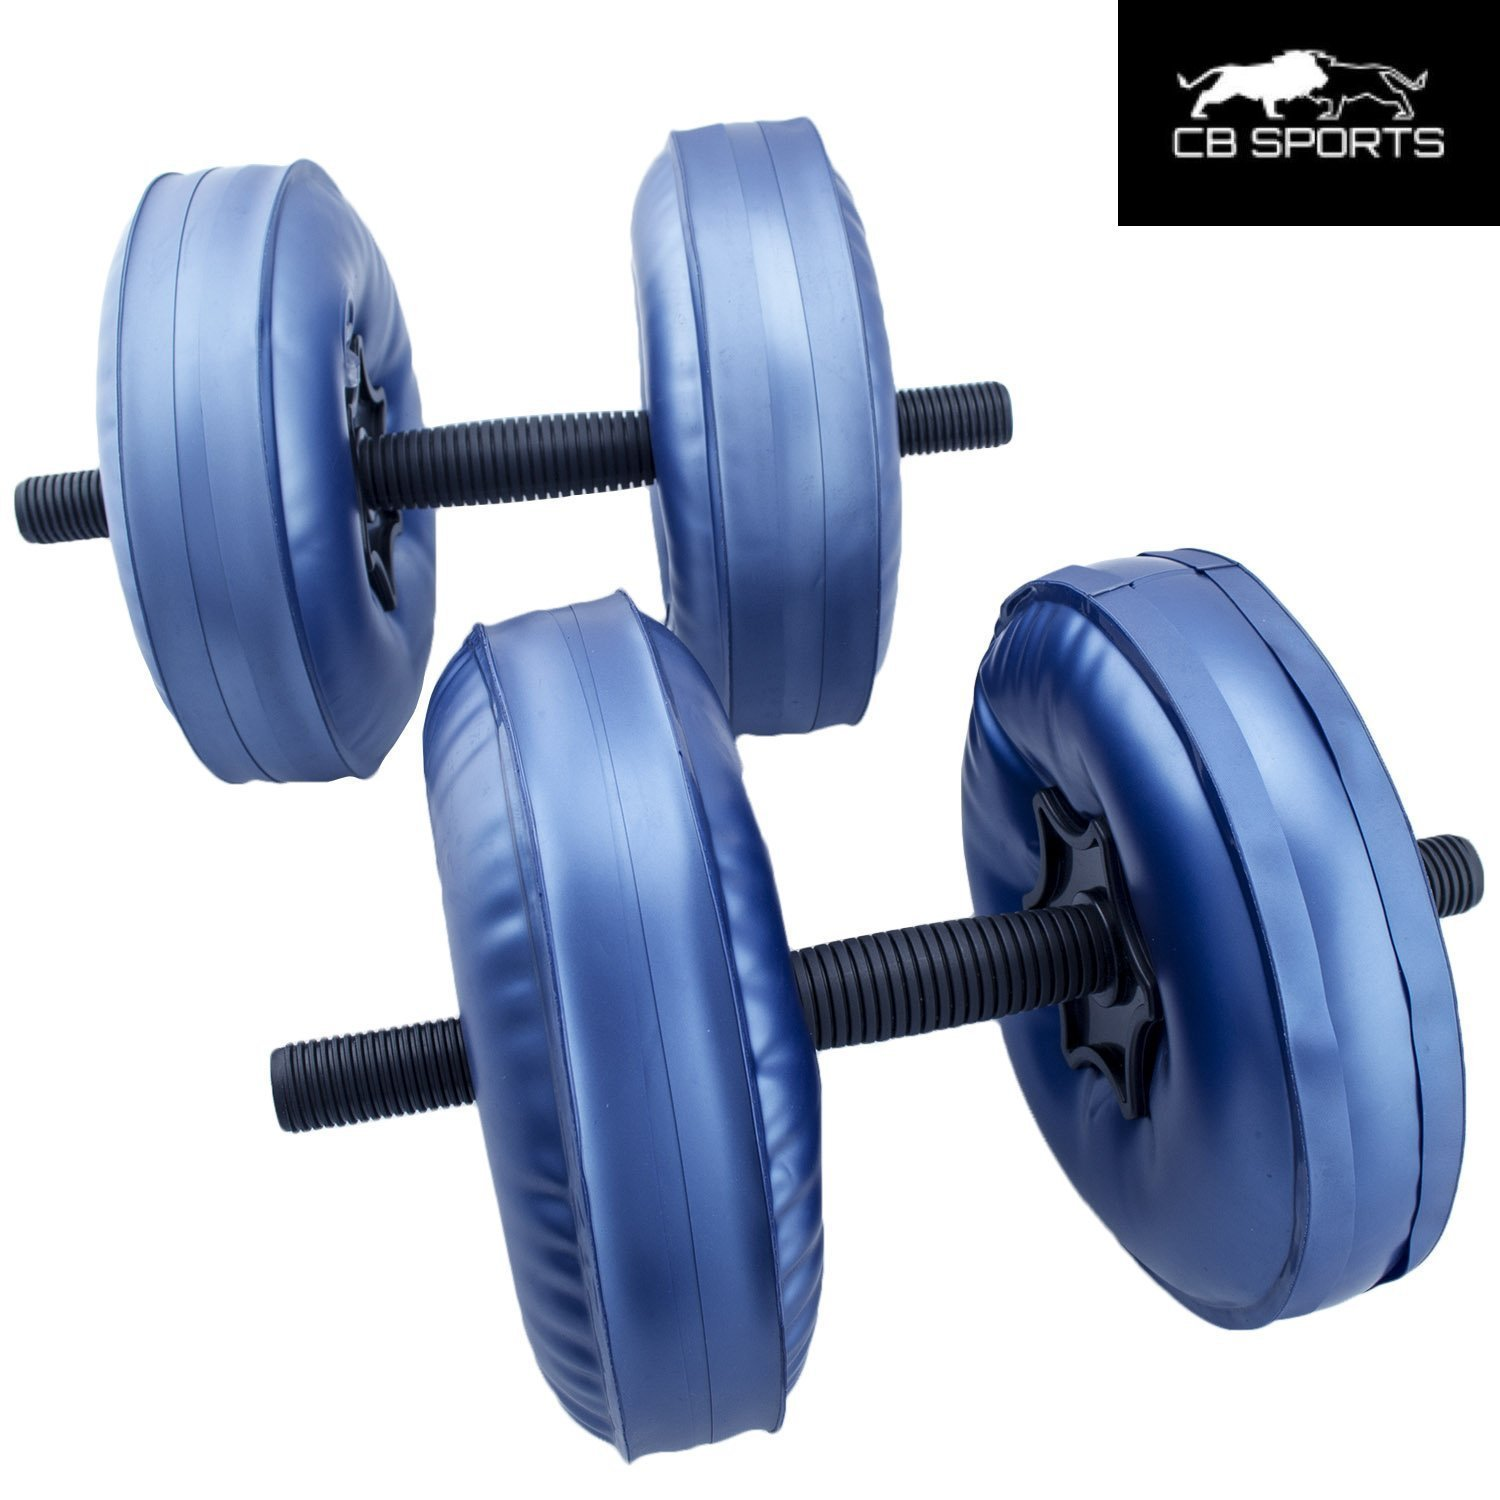 2017 NEW CB Sports Deluxe Travel Dumbbells- Medium Weight upto 22lb/10kg - Gym and Home Workout Equipment (Set of 2) - FILL WITH WATER - Adjustable, Portable Exercise Equipment - Water Weights - BLUE